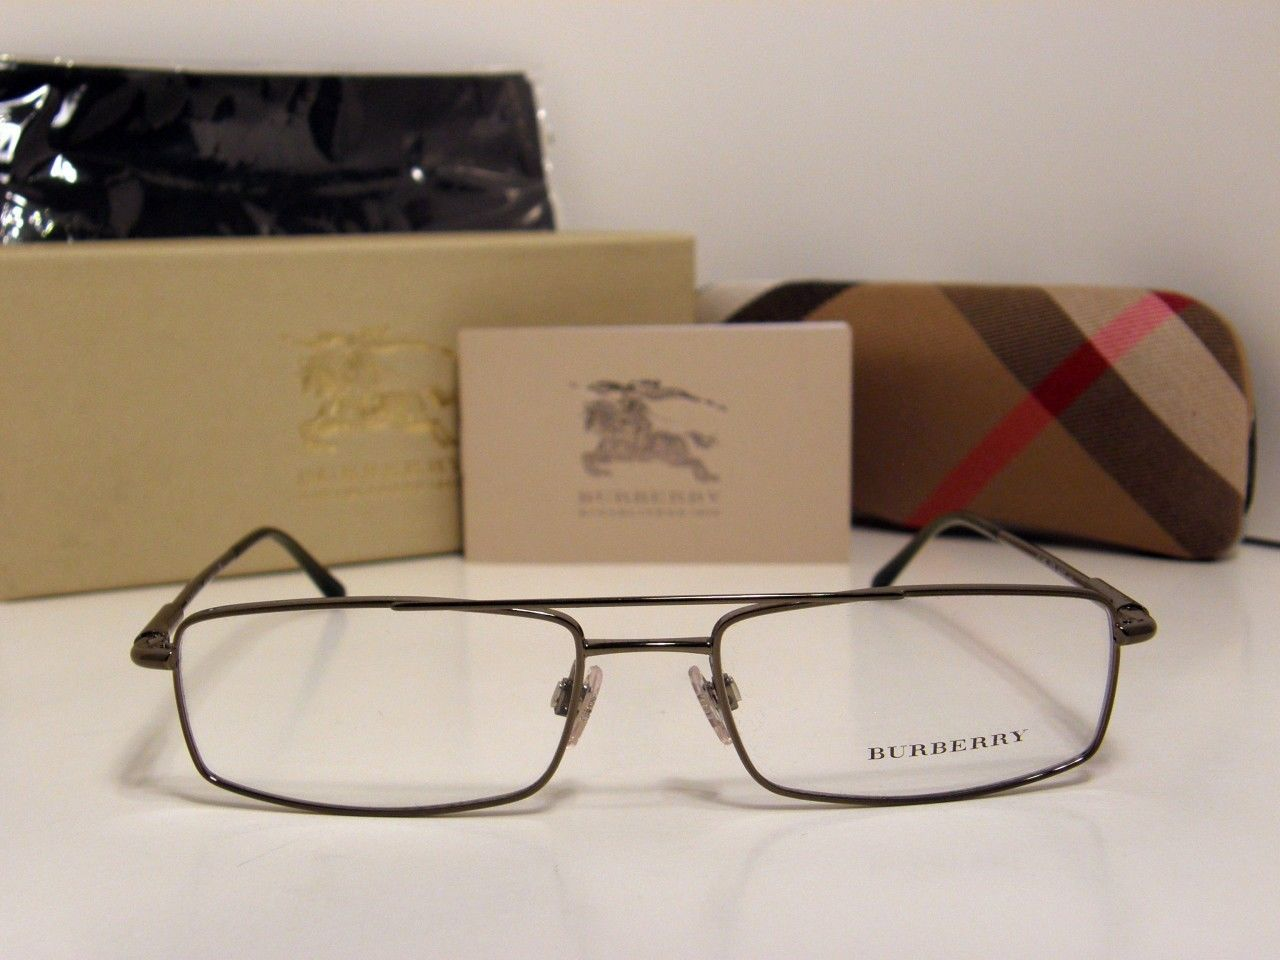 c2c7697a80e9 New Authentic Burberry Eyeglasses BE 1185 and 50 similar items. S l1600